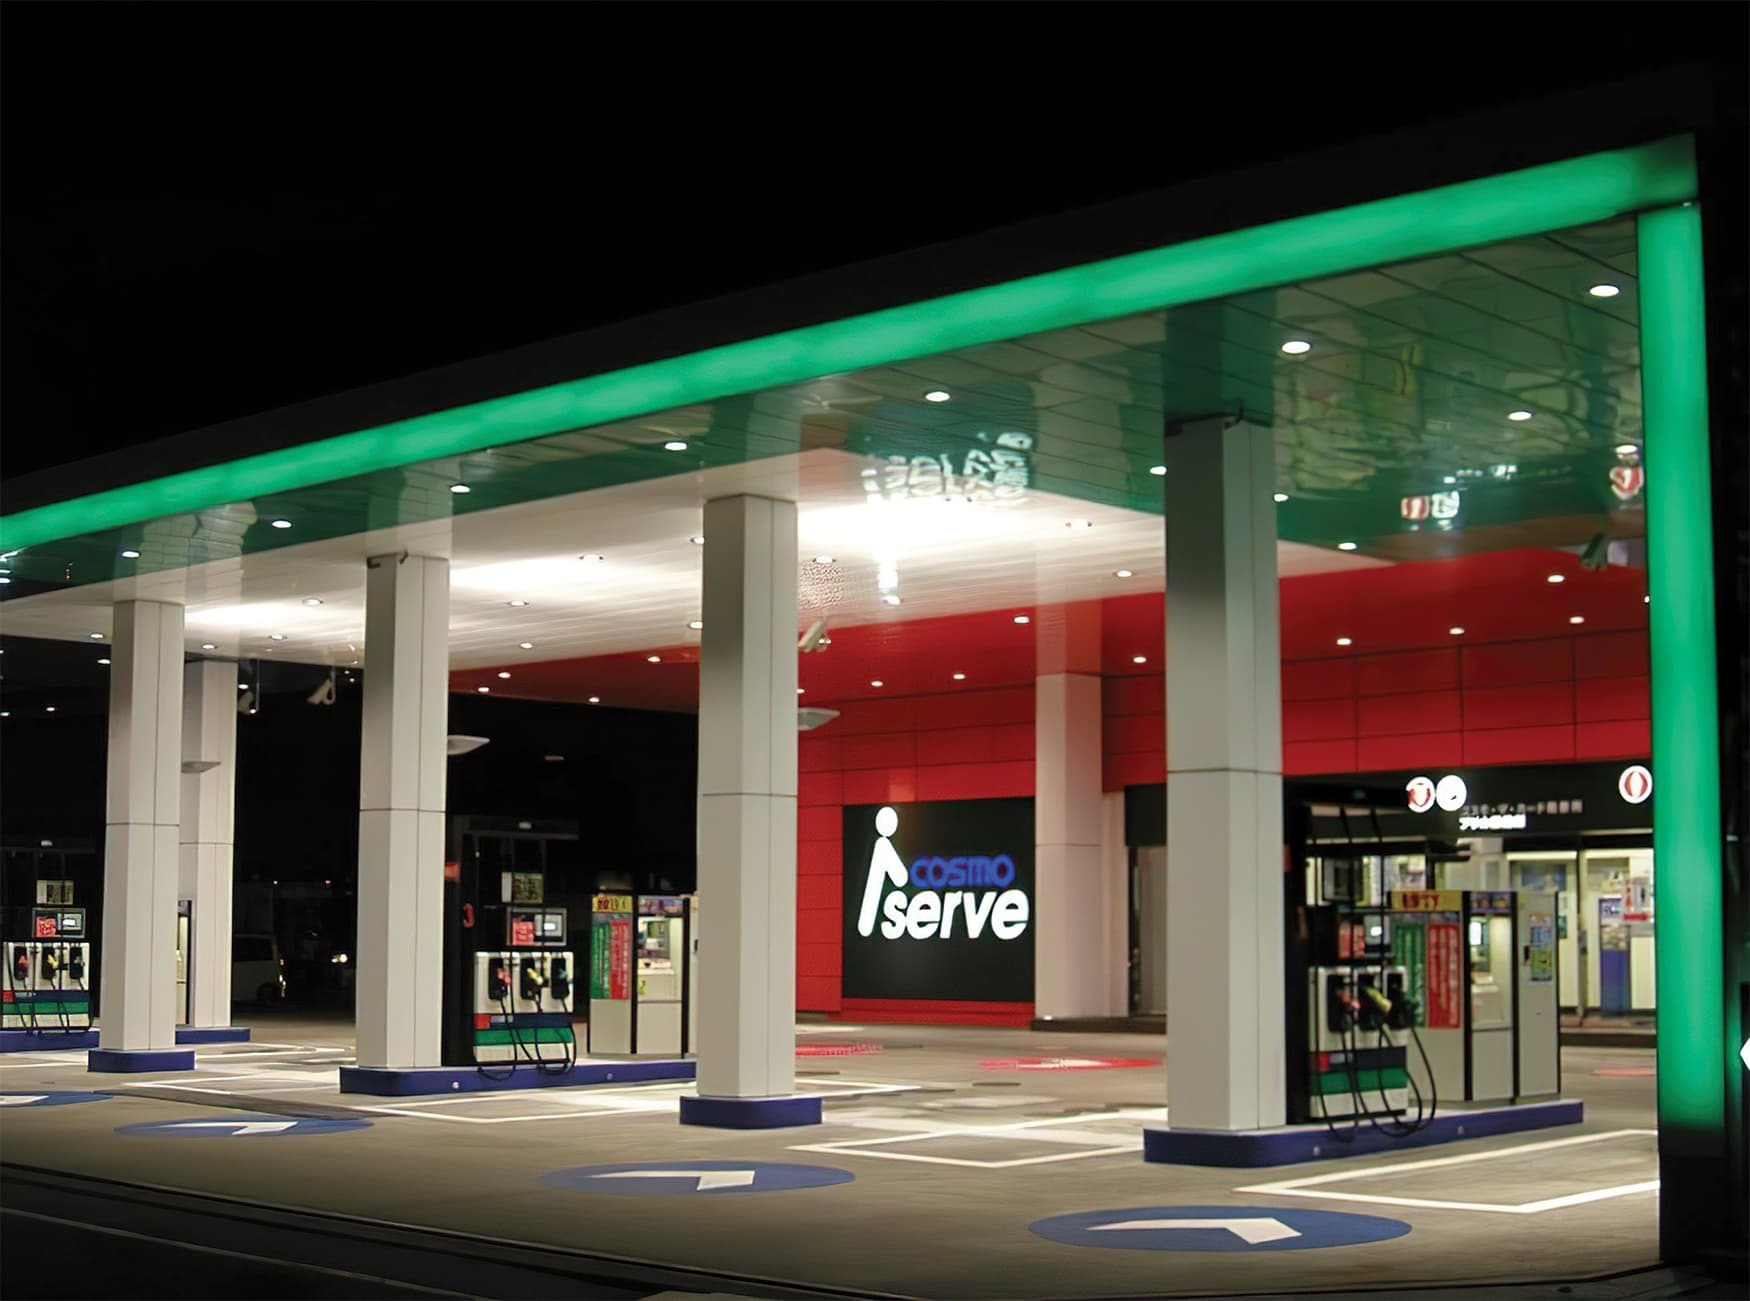 Cosmo i-Serve, a self-serve gas station in Tokyo, Japan. RSM Design prepared environmental graphics and branding services.